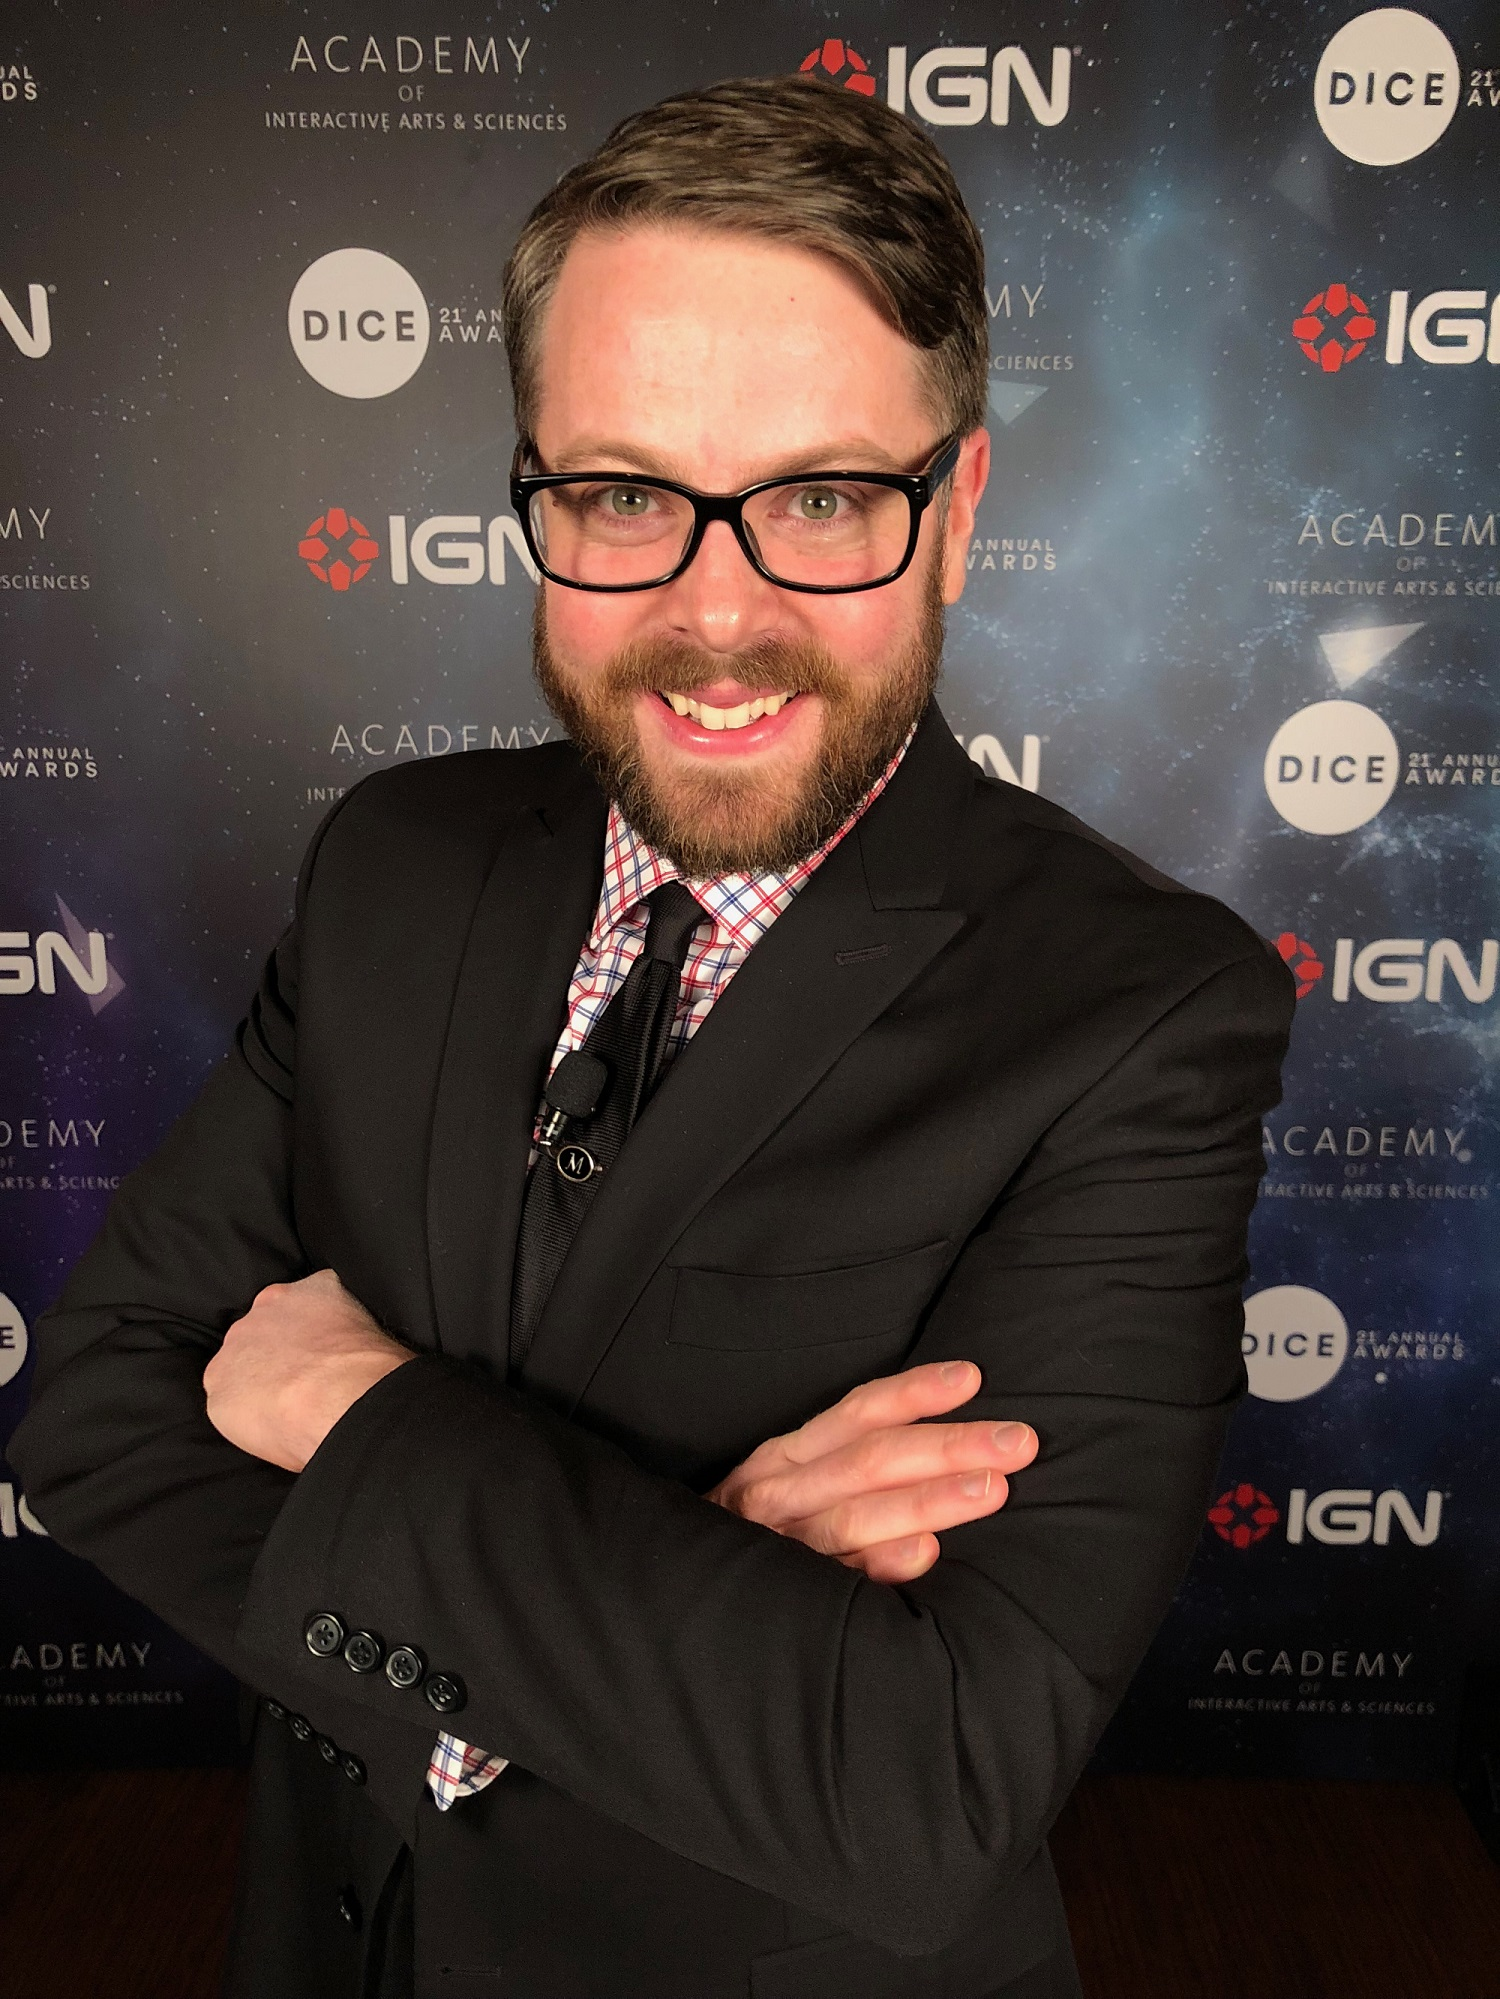 Picture of Greg Miller at the Academy of Interactive Arts and Sciences awards